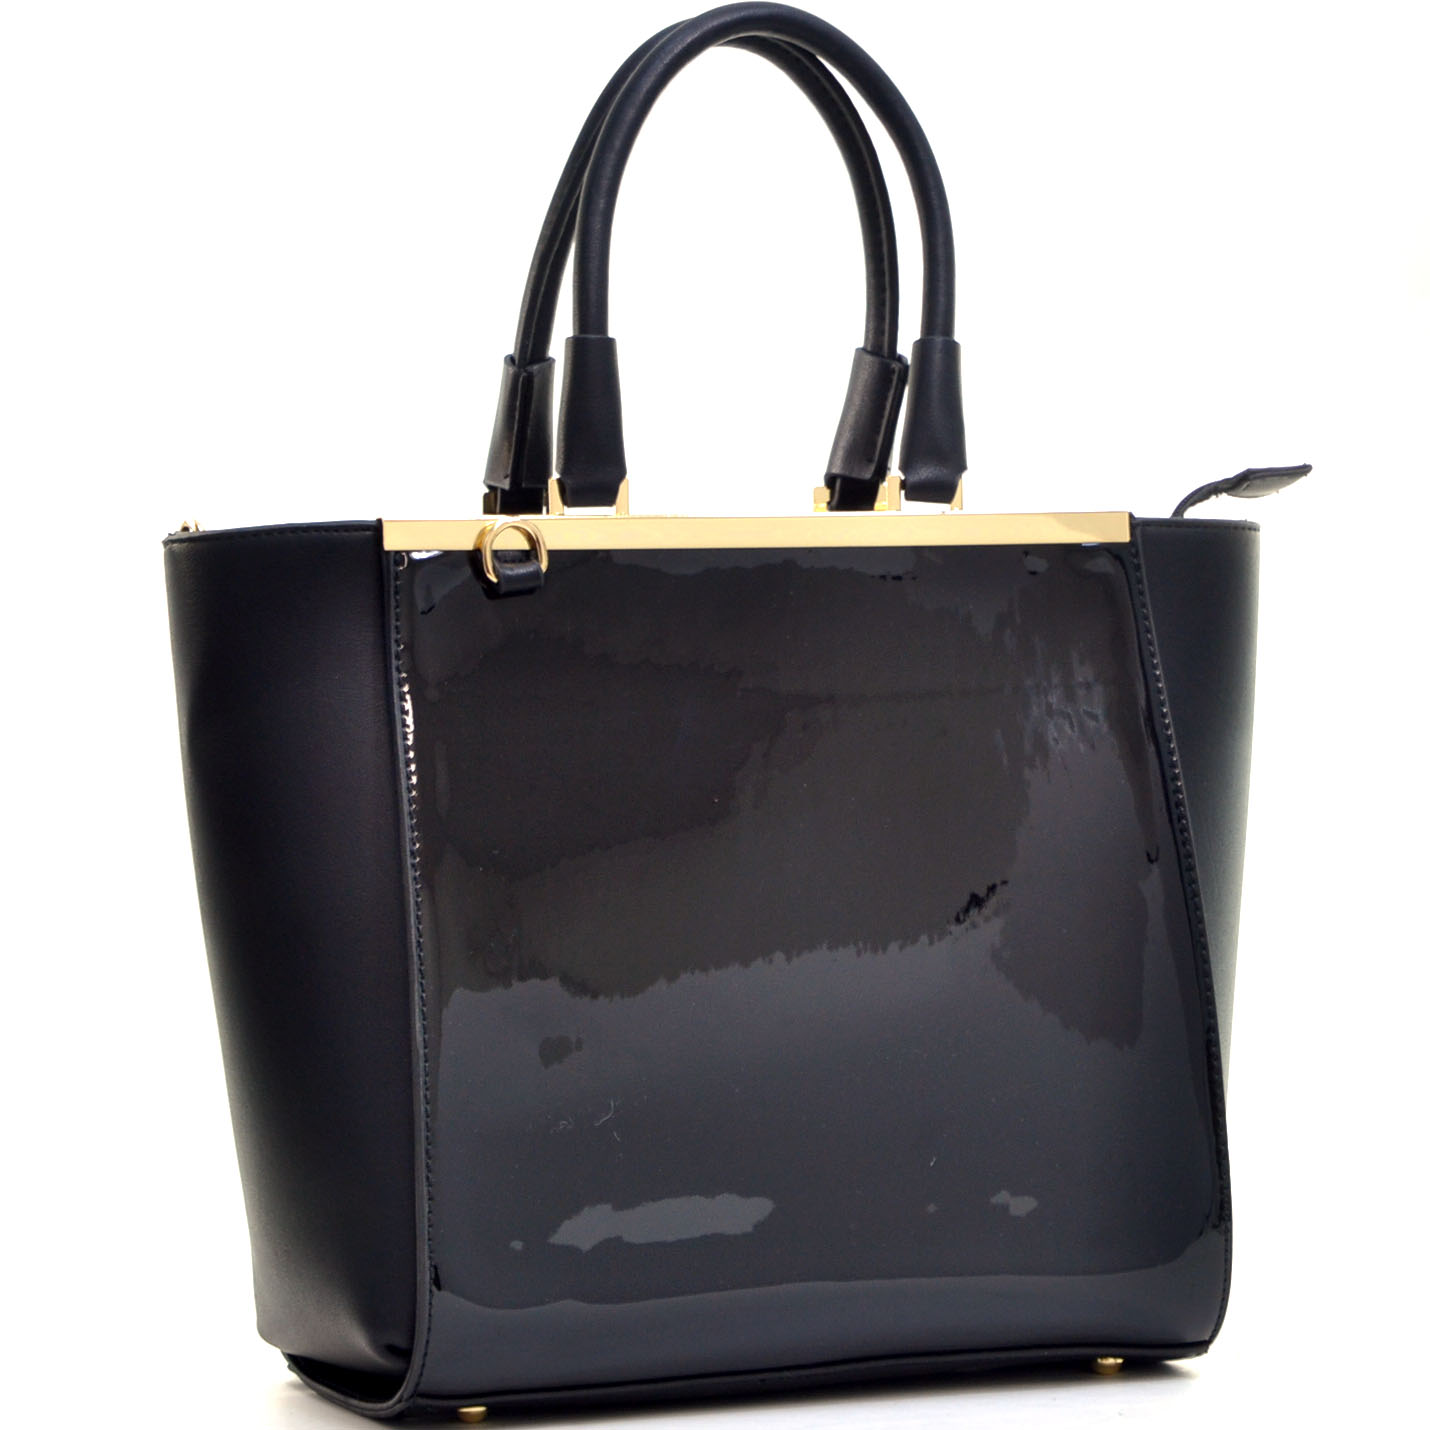 Patent Faux Leather Gold-Tone Satchel with Shoulder Strap